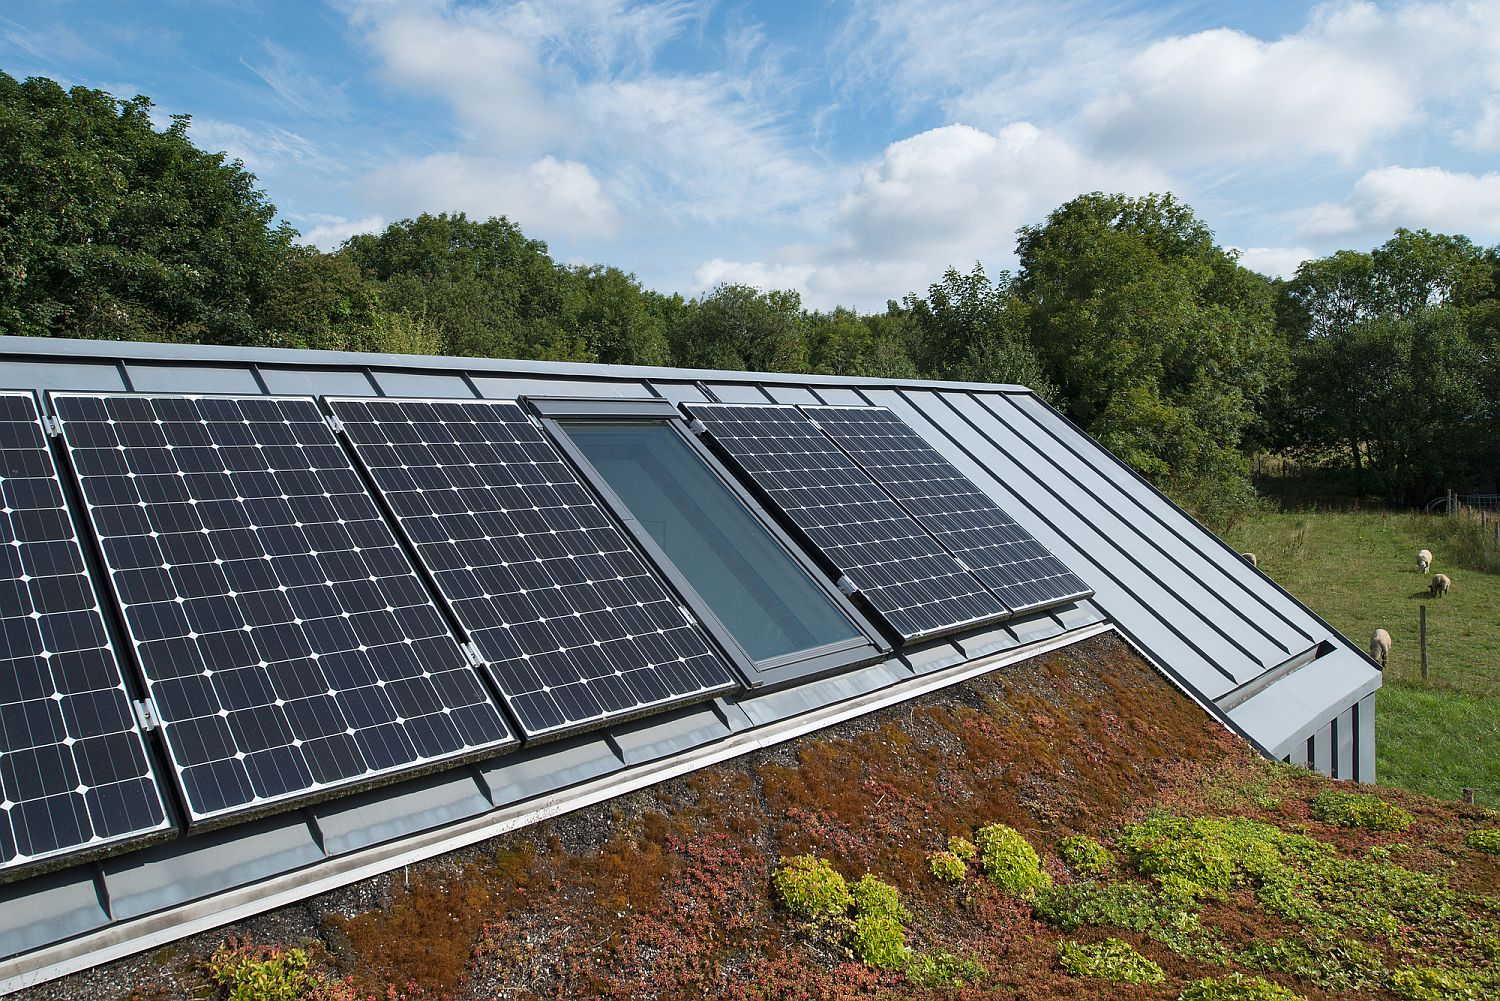 Solar-panels-on-the-roof-provide-the-home-with-green-energy